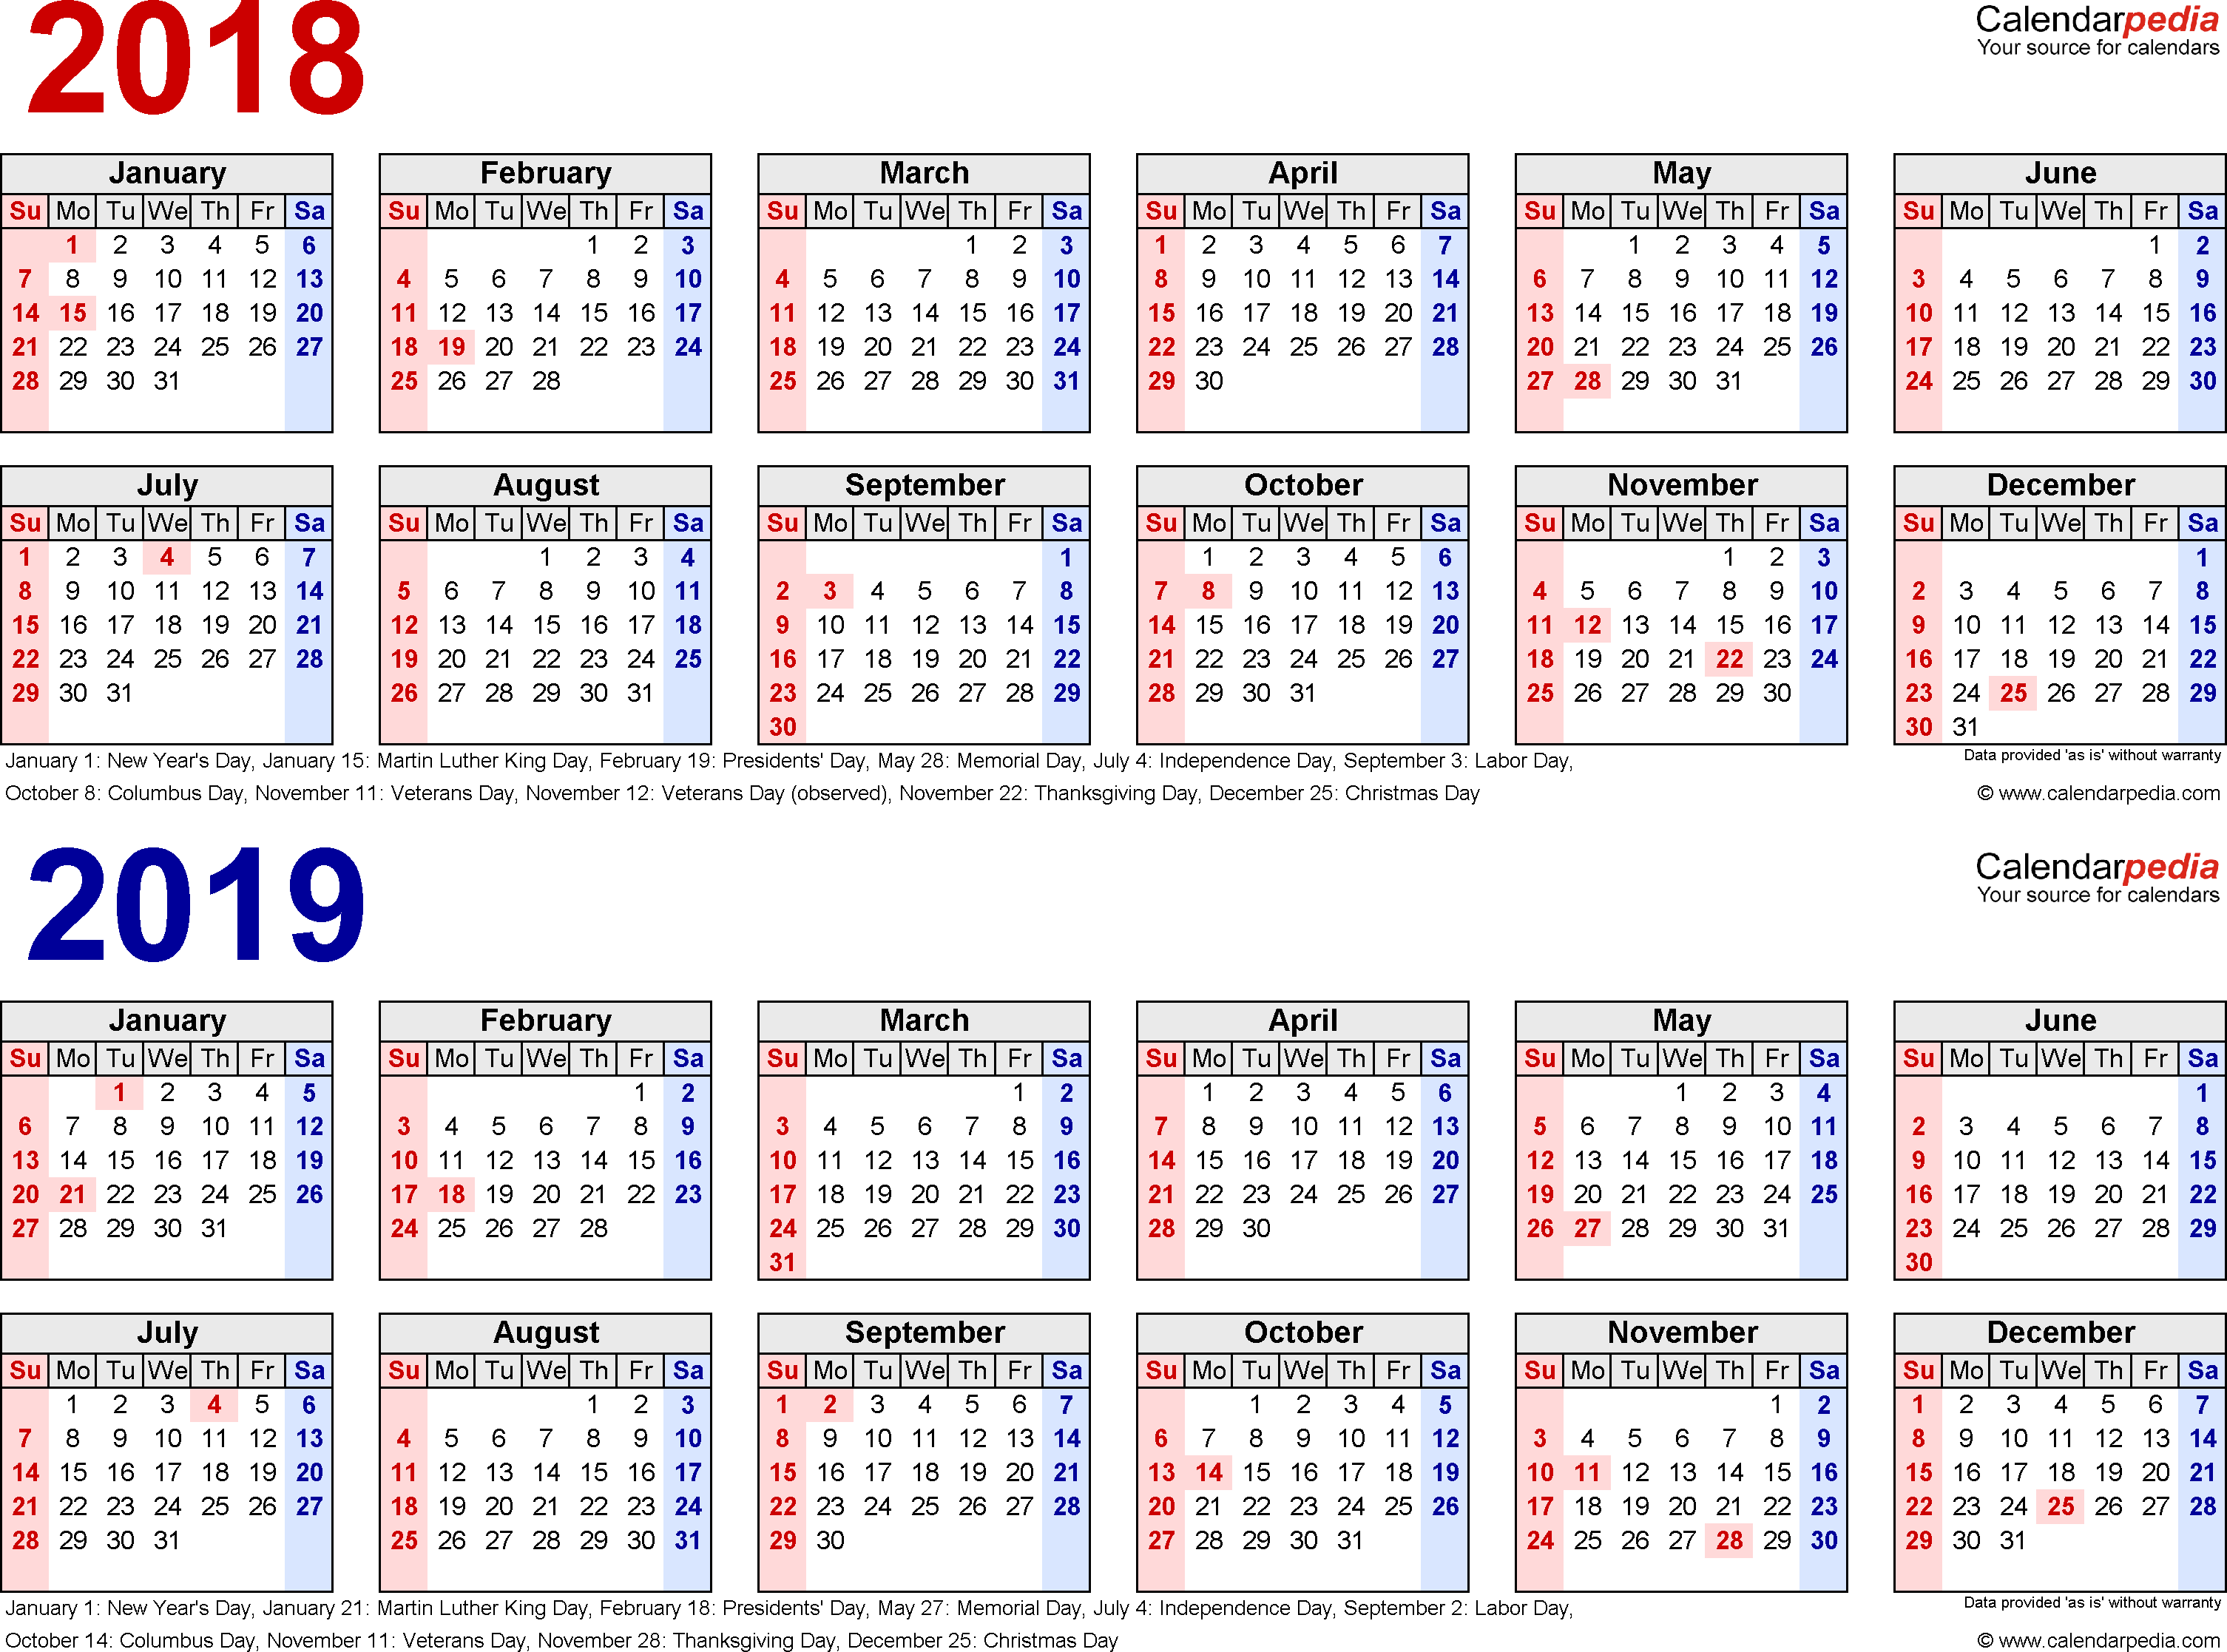 Template 1: Word template for two year calendar 2018/2019 (landscape orientation, 1 page, in red and blue)